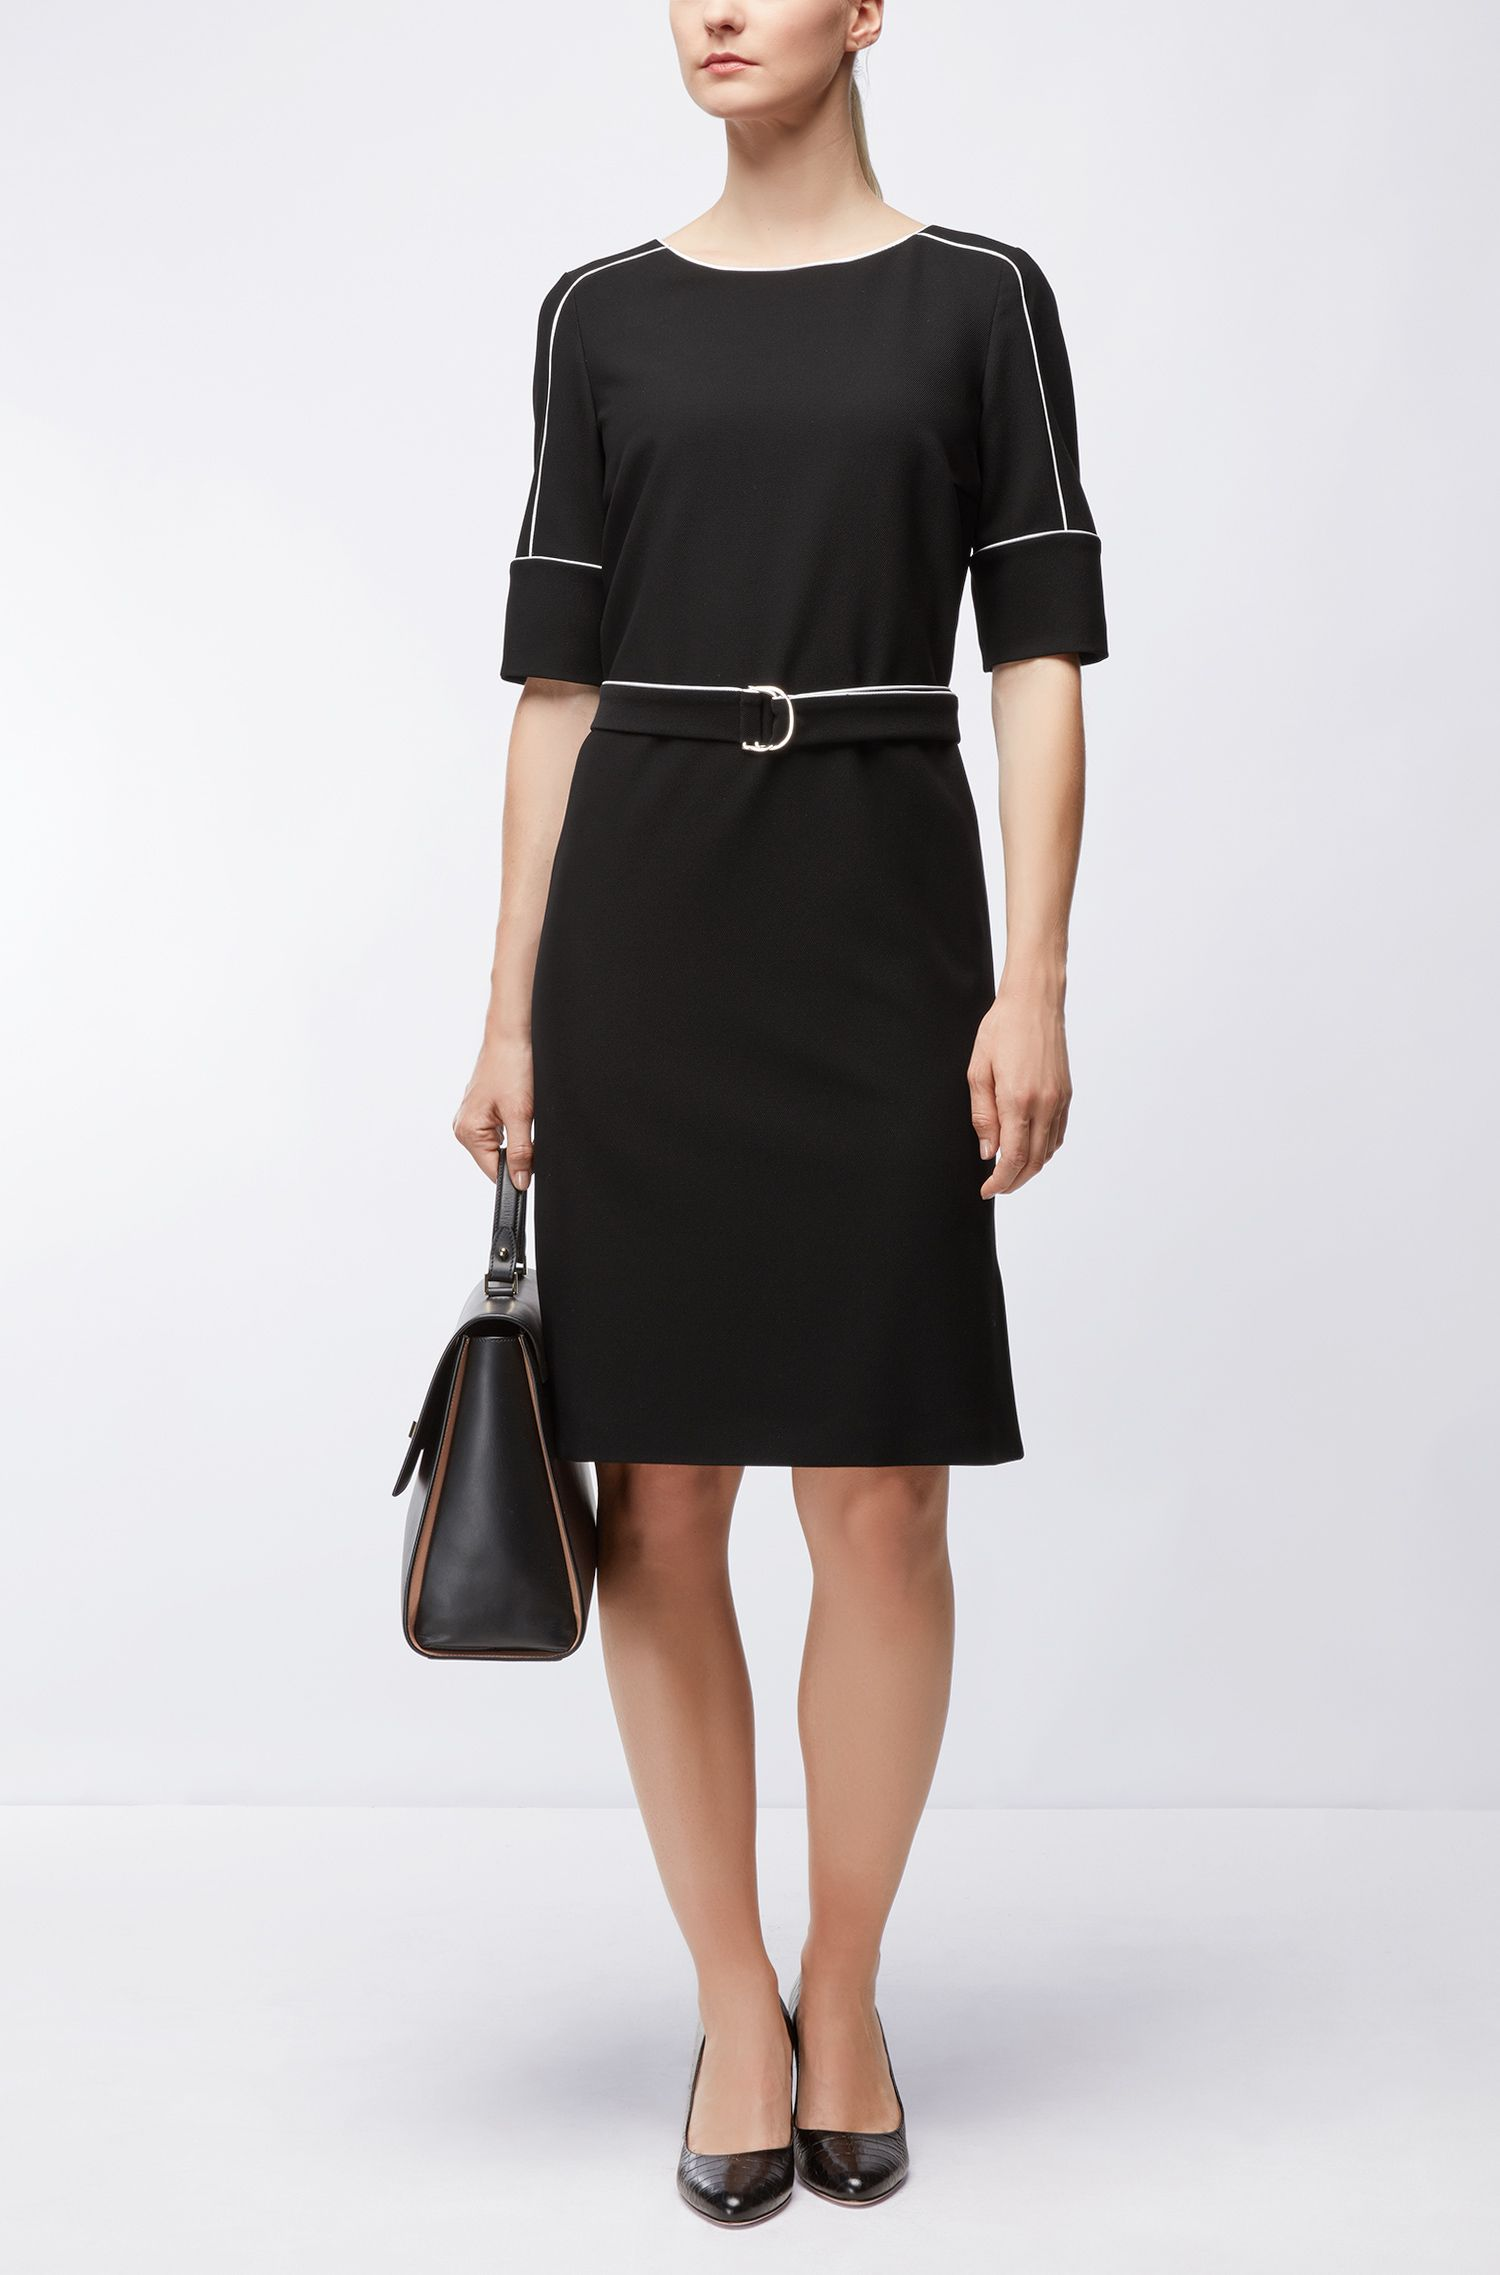 Piped Stretch Shift Dress | Duwimea